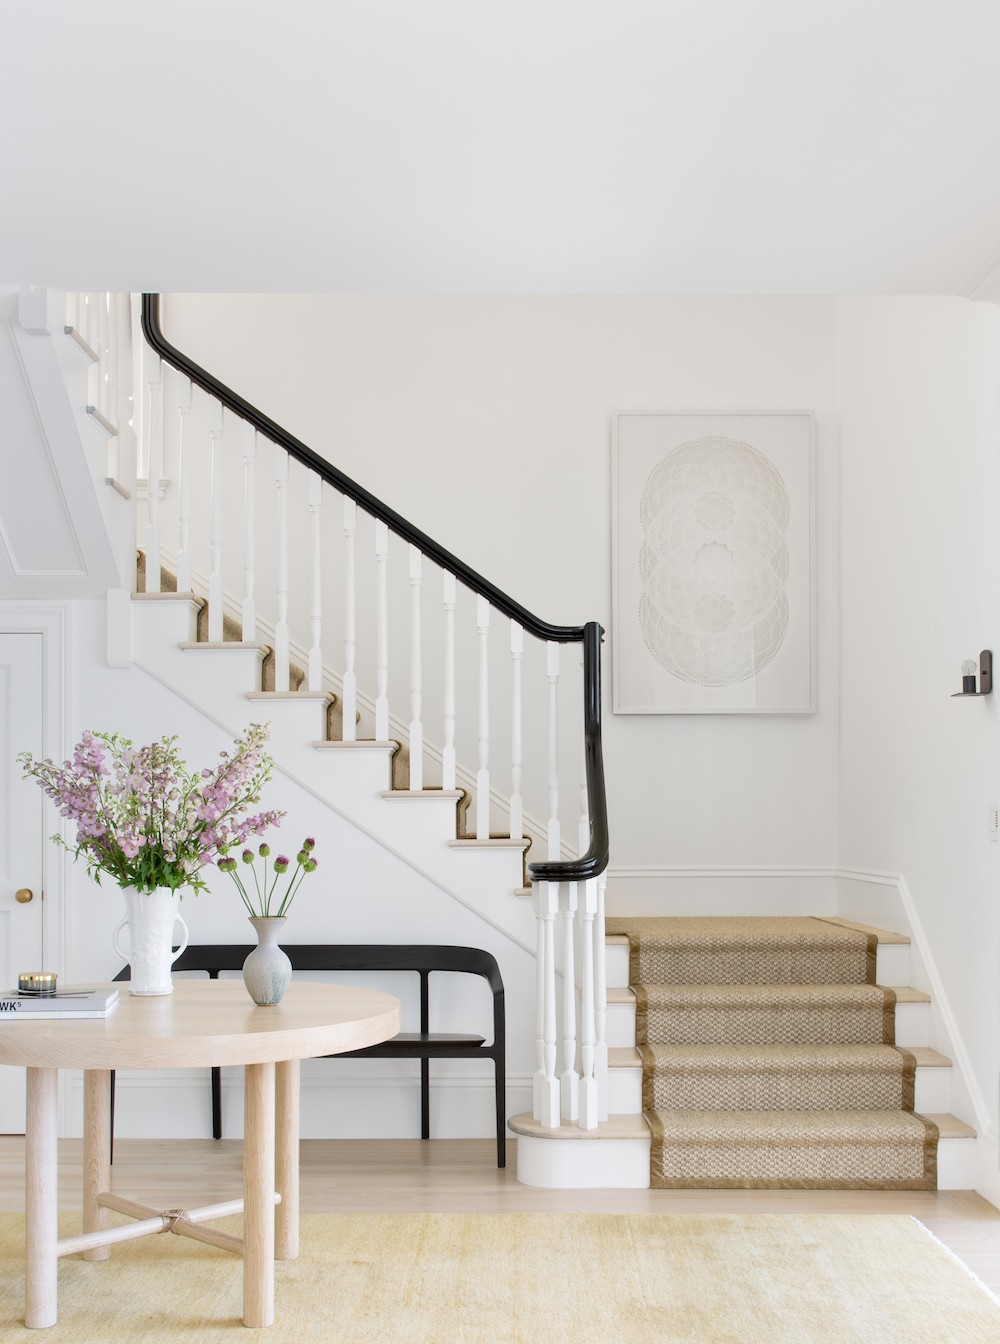 Contemplate a Series of Entryway Decor Ideas for a Bold Aesthetic 7 entryway decor Contemplate a Series of Entryway Decor Ideas for a Bold Aesthetic Contemplate a Series of Entryway Decor Ideas for a Bold Aesthetic 7